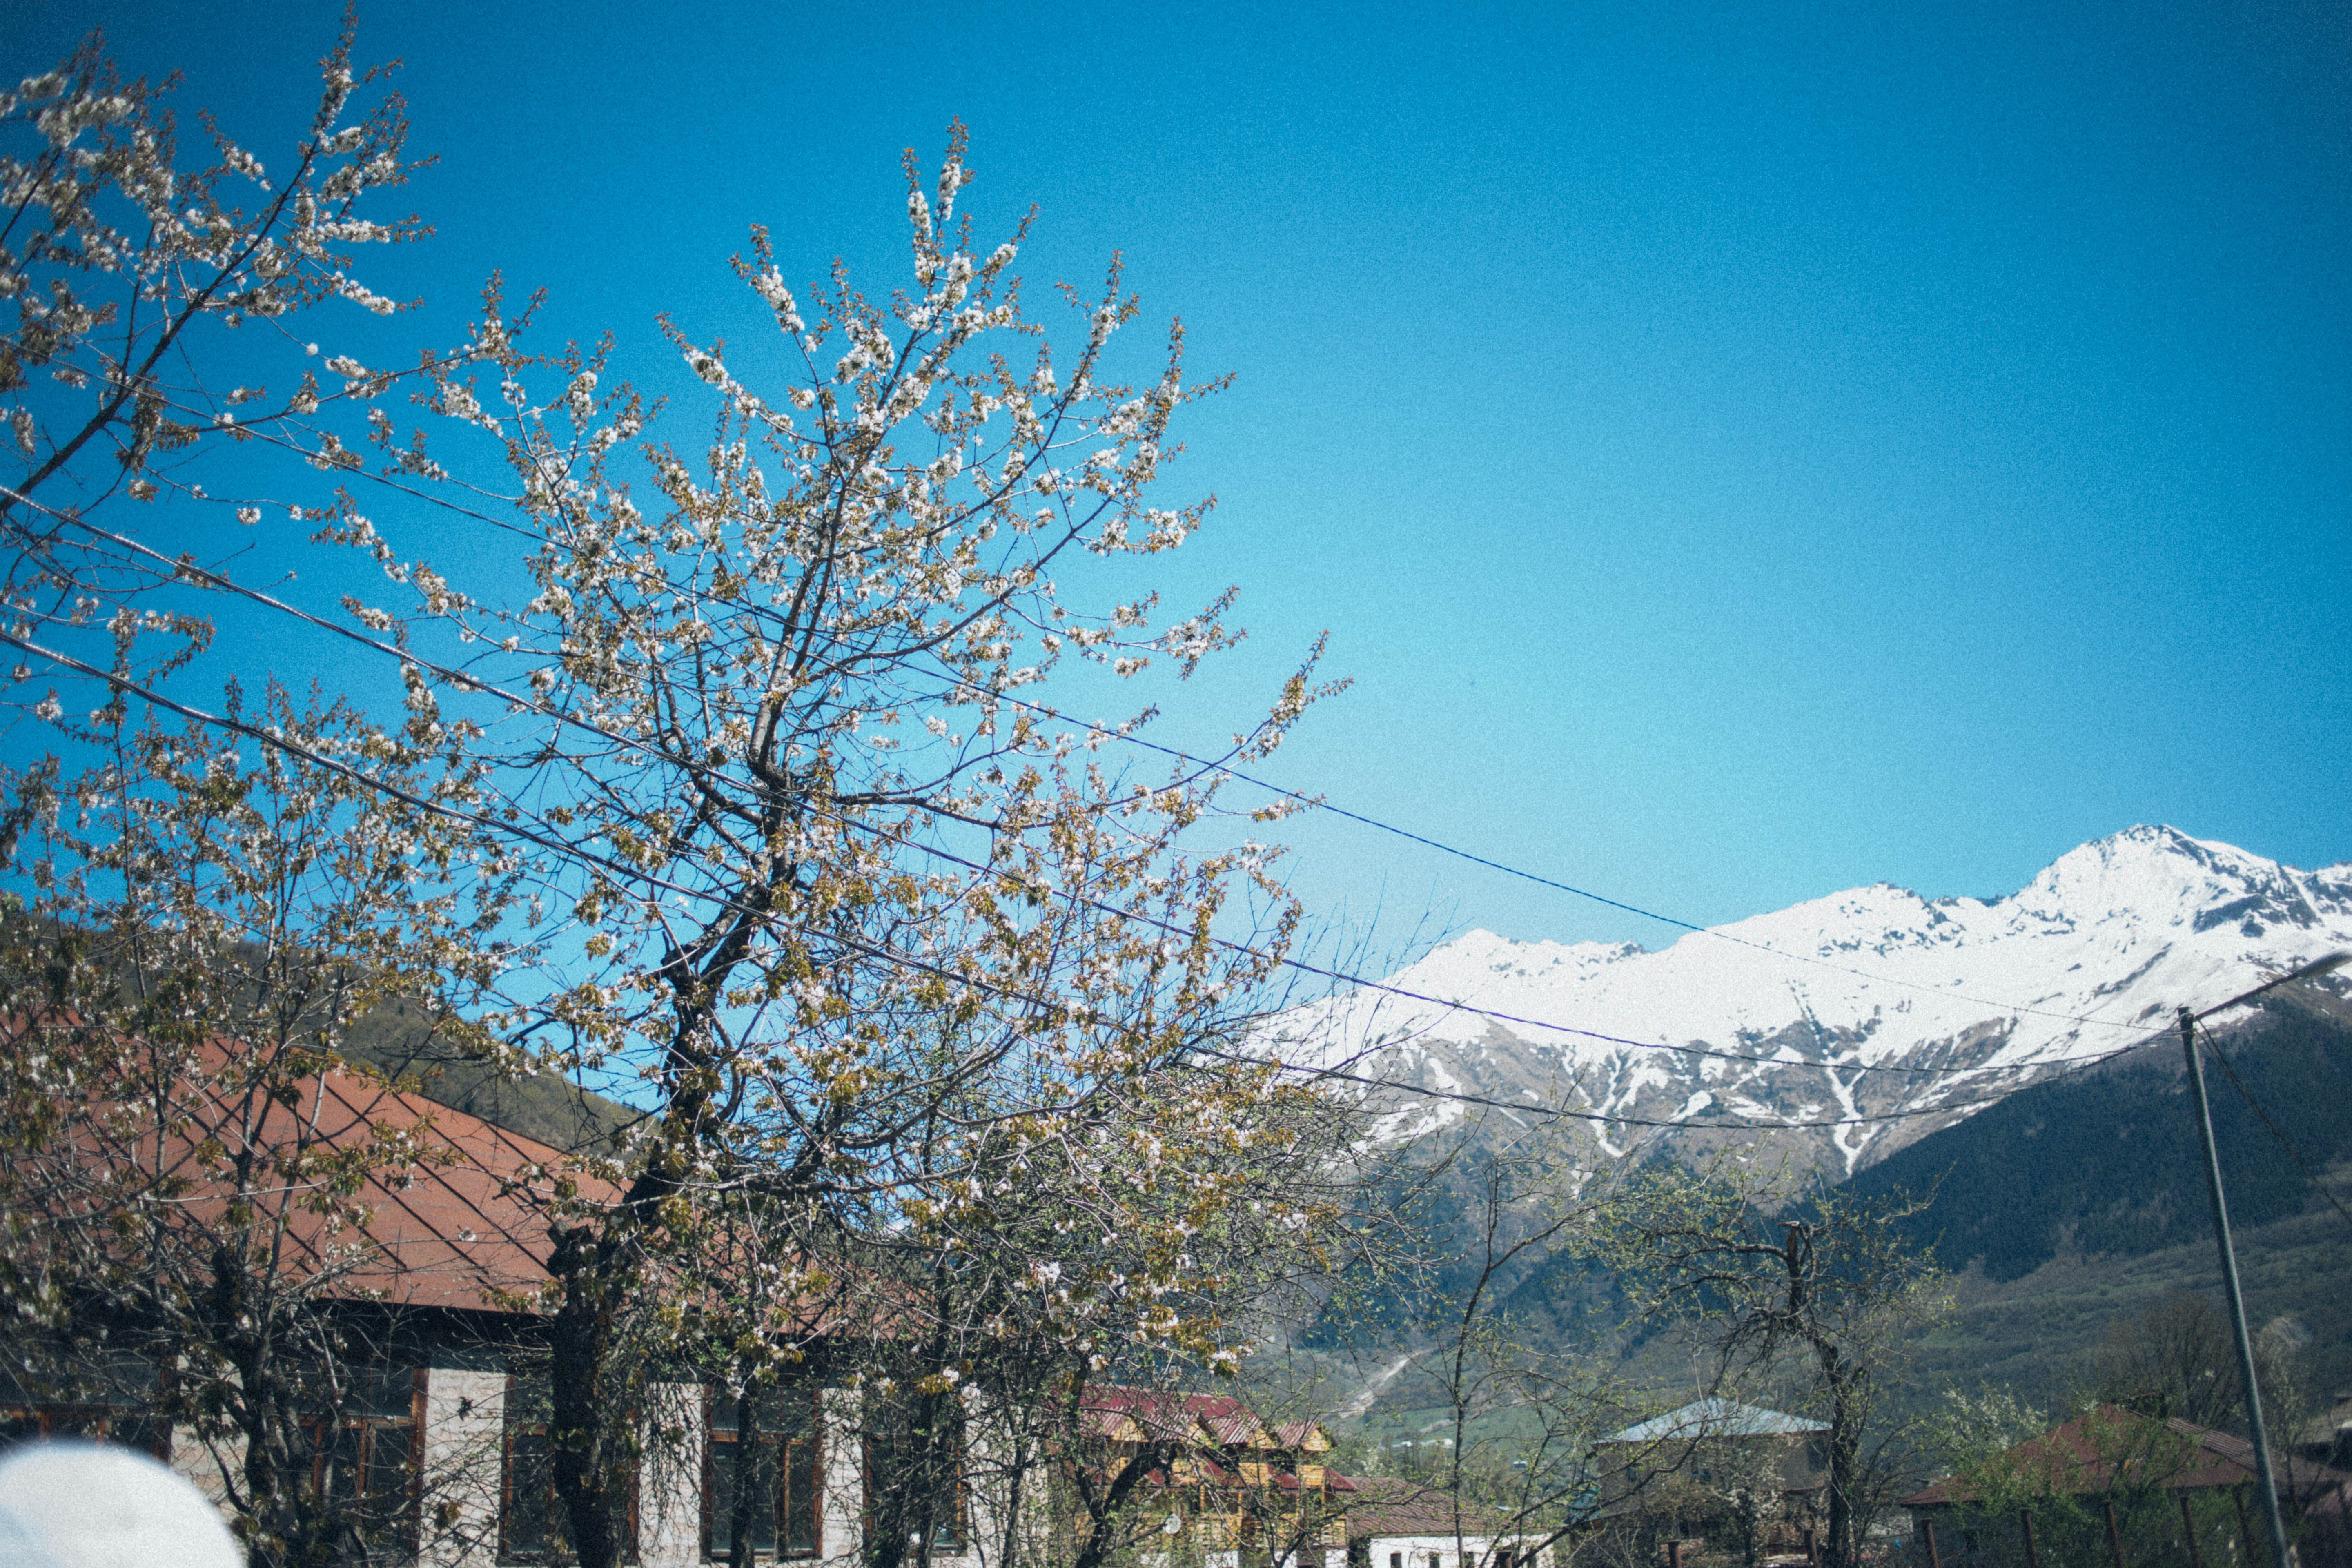 View of Snow Capped Mountain Near Village